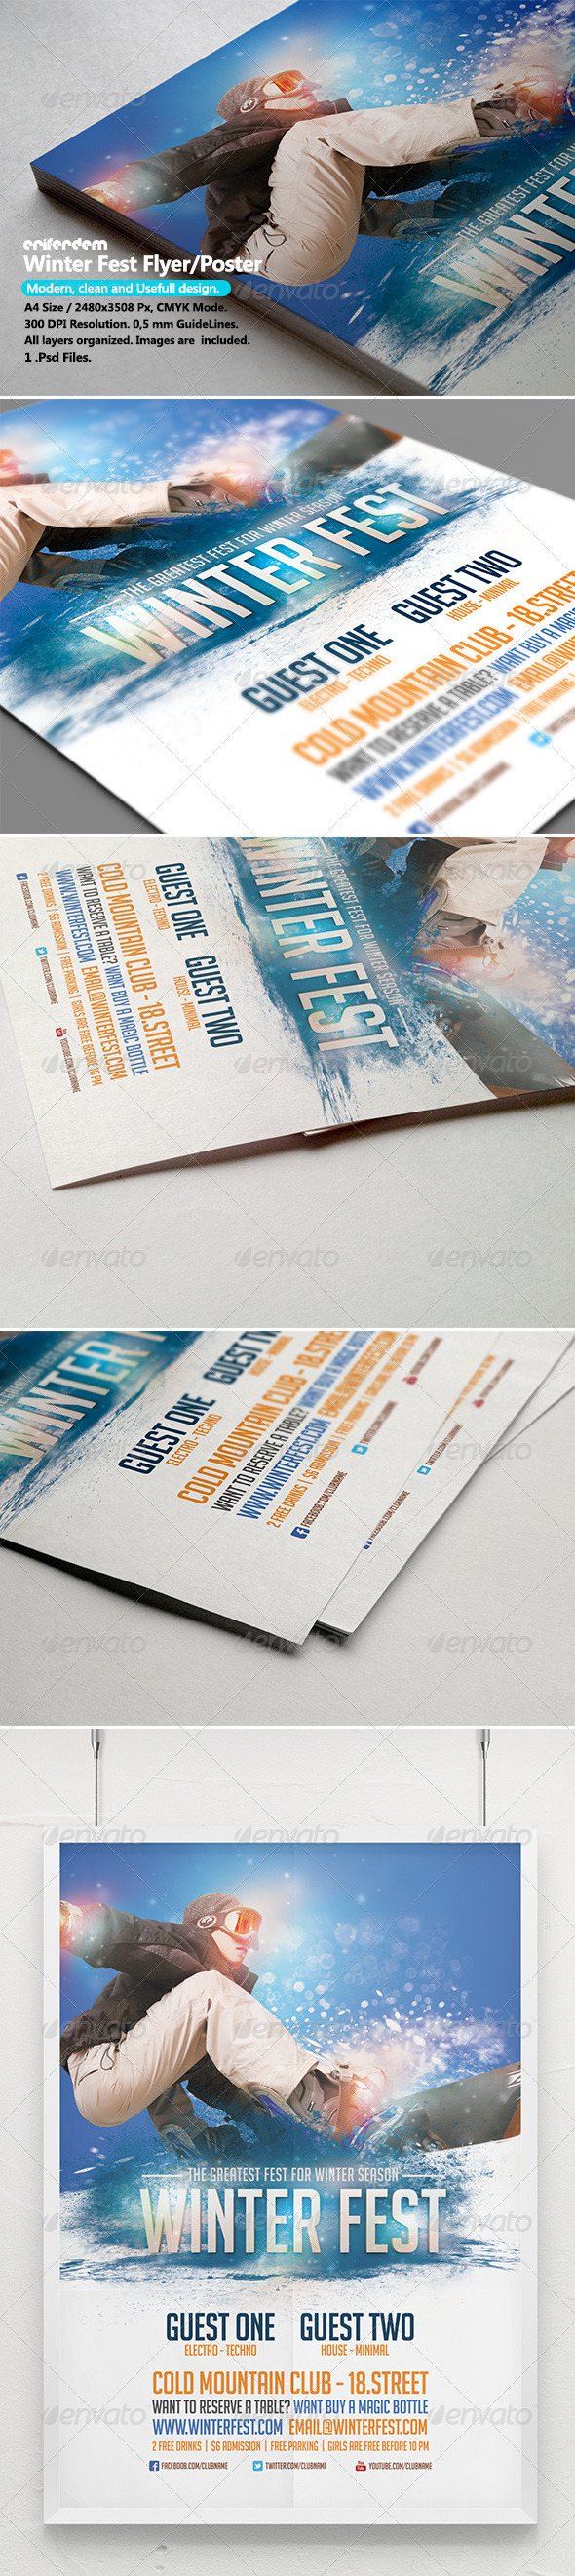 Winter Fest Flyer/Poster Template - Events Flyers